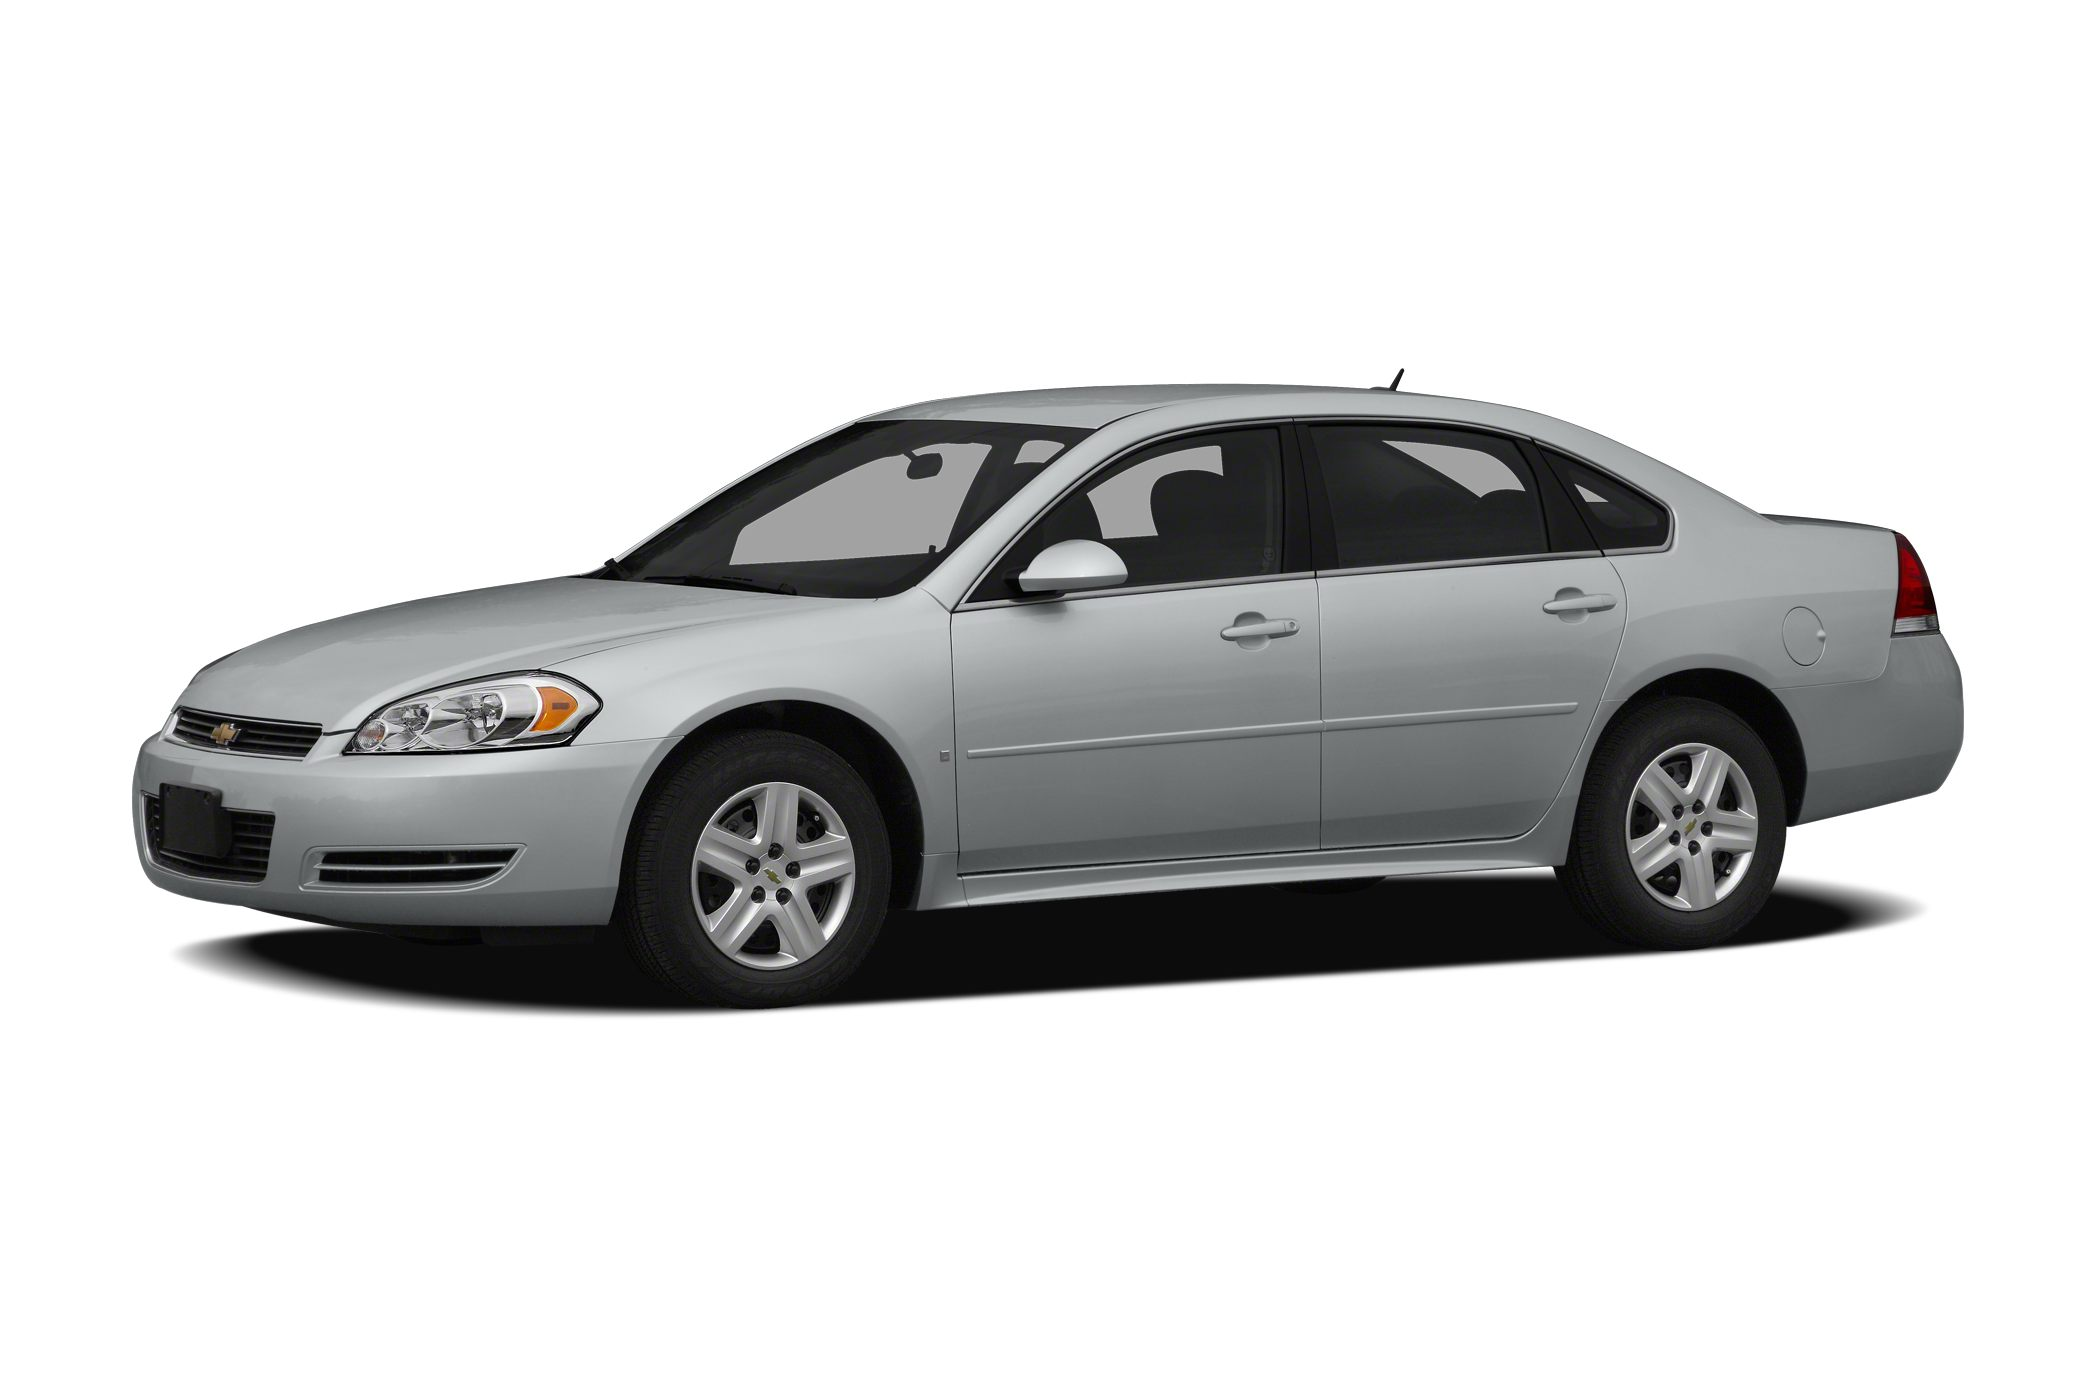 2012 Chevrolet Impala LS Sedan for sale in Westmoreland for $12,988 with 61,435 miles